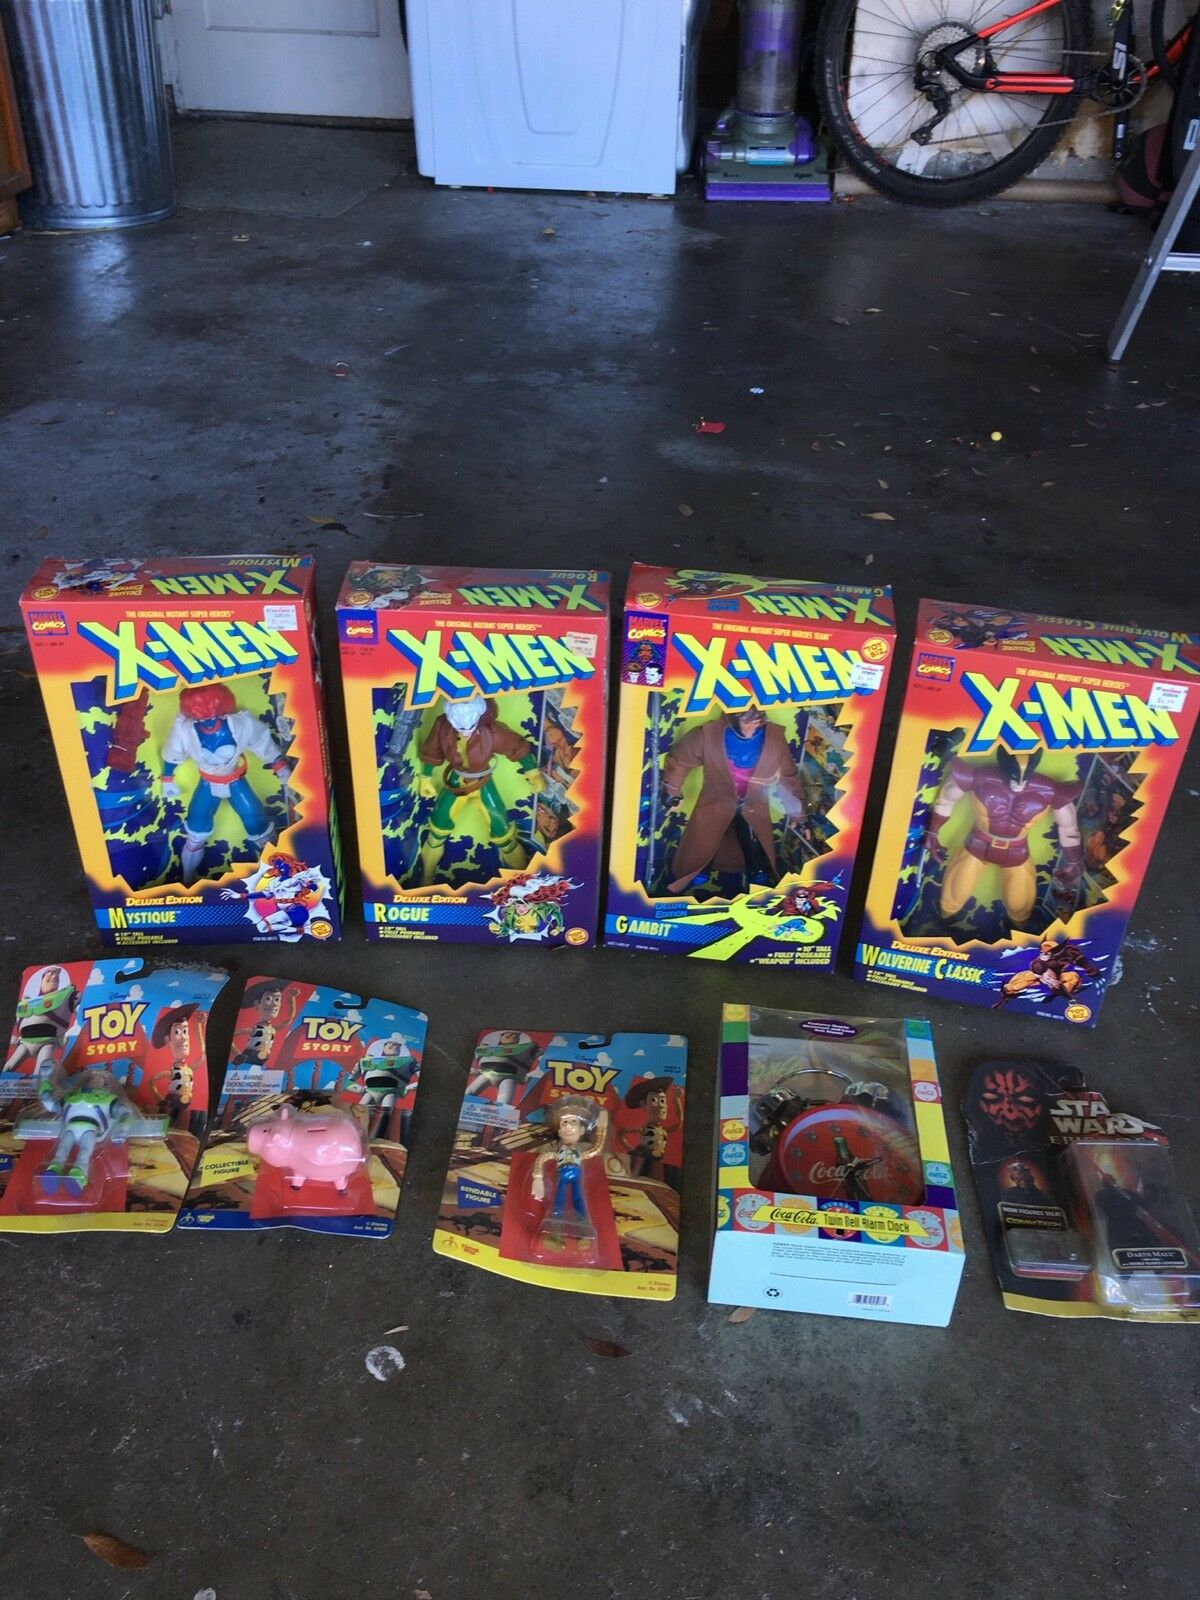 (4) X-Men Deluxe Edition Figurines and other toys